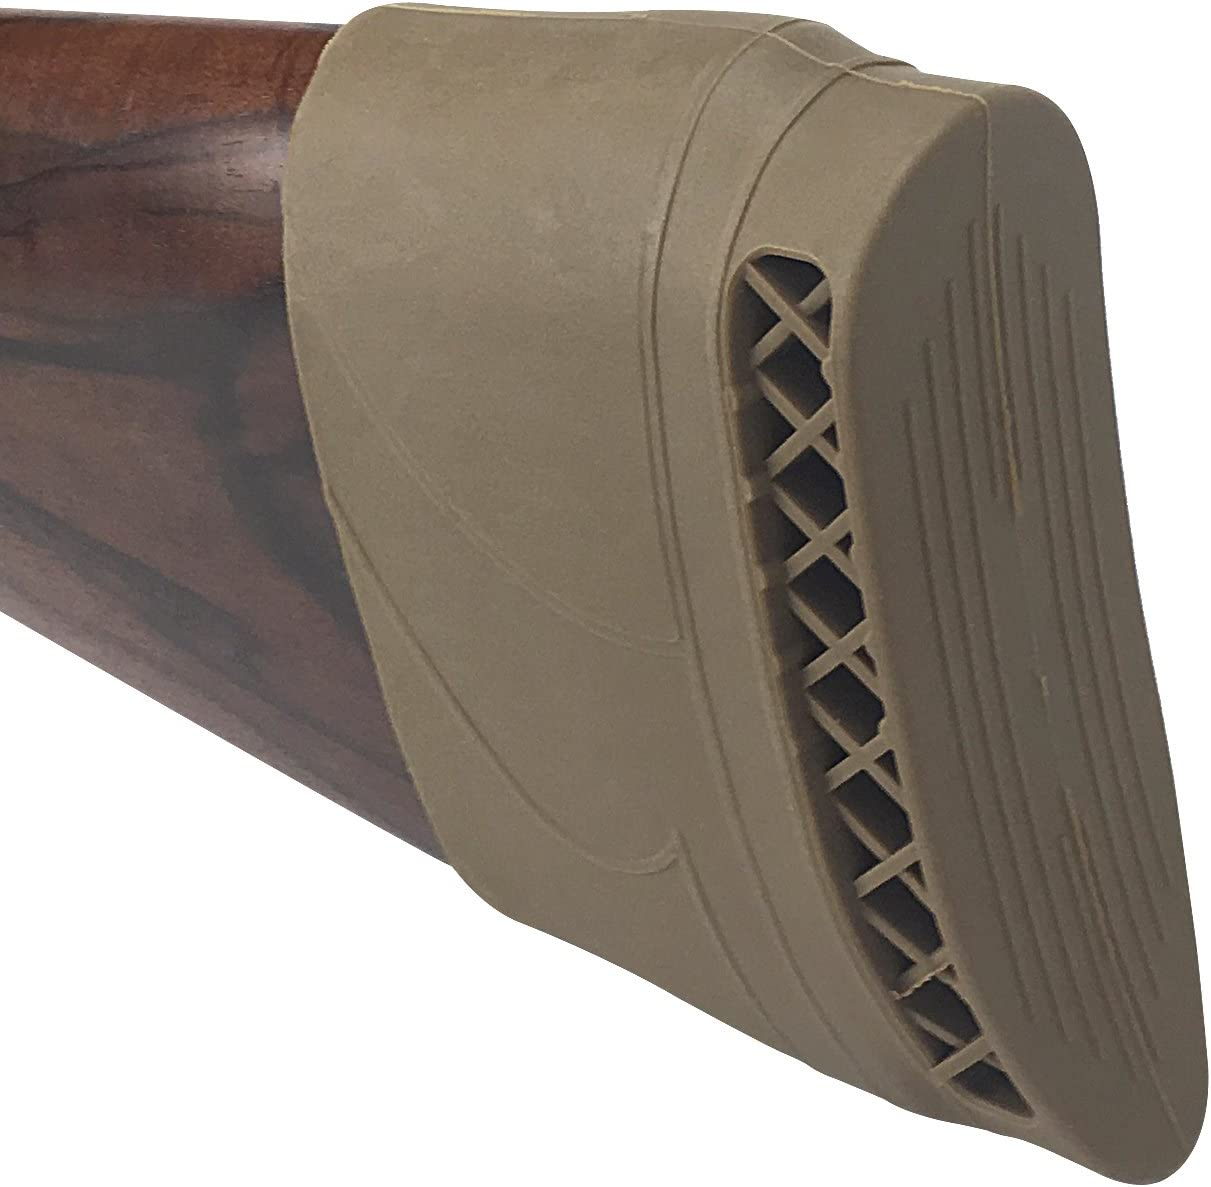 Tourbon Chasse Tournage Pistolet Butt Stock Recoil Pad